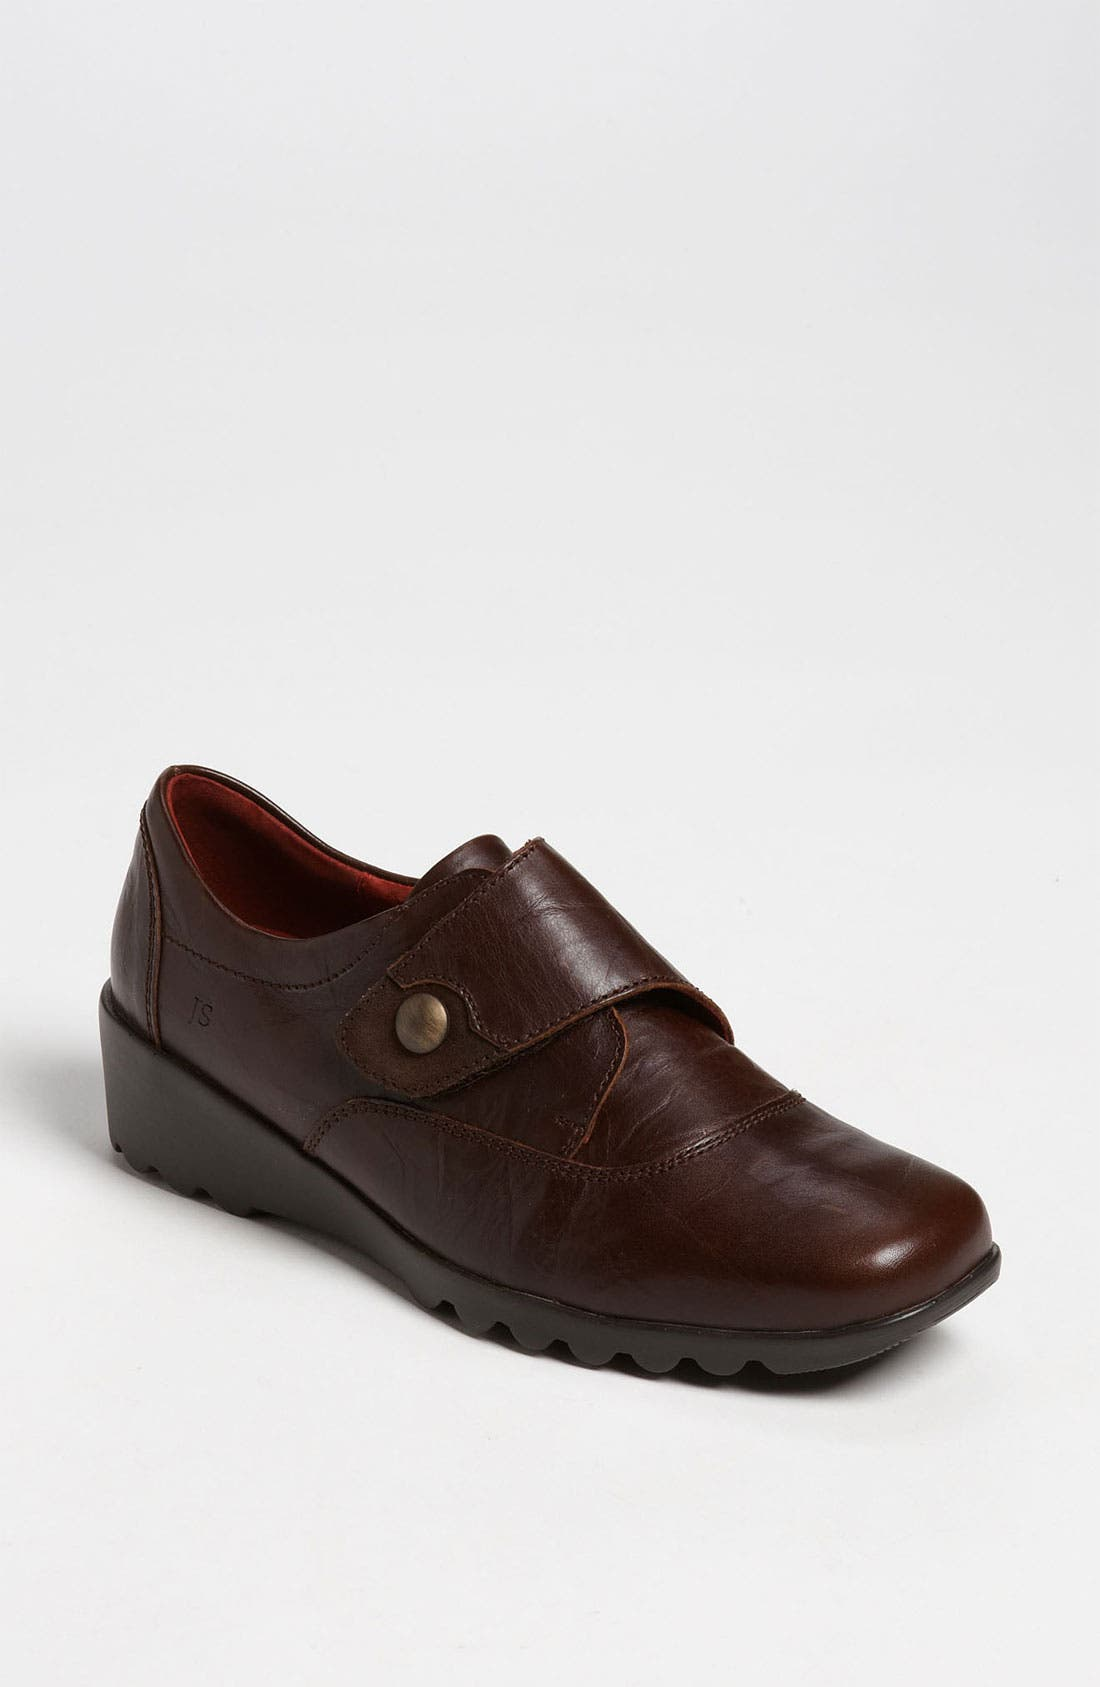 Alternate Image 1 Selected - Josef Seibel 'Brooke' Flat